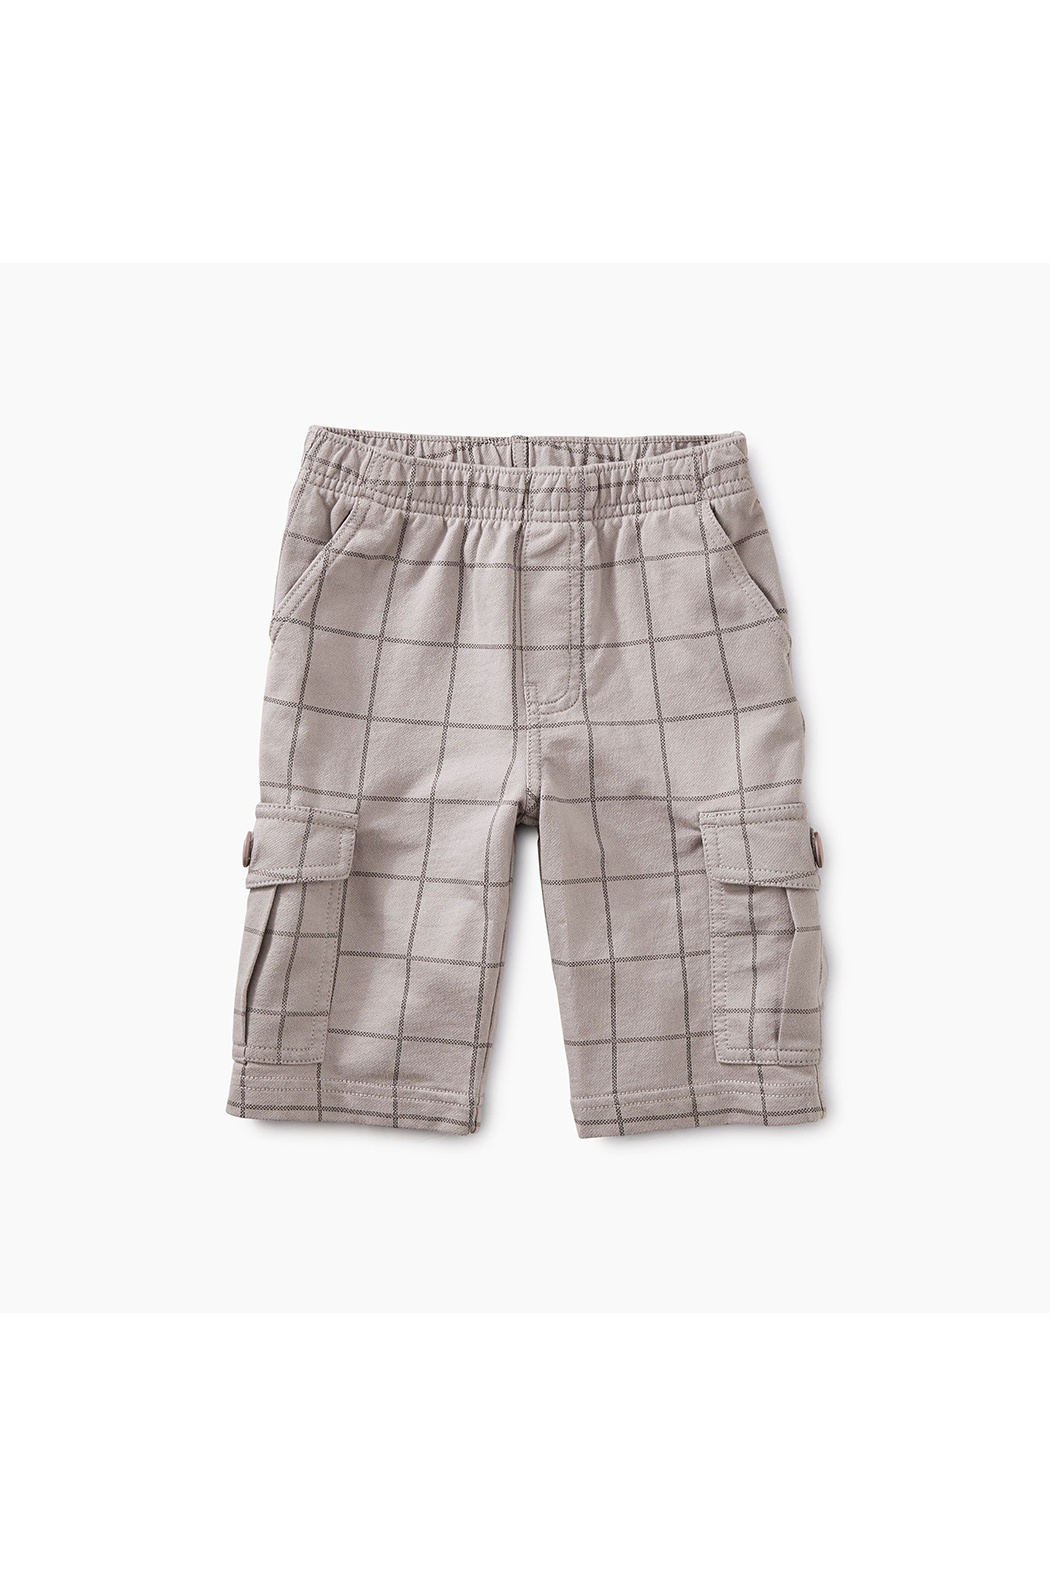 Tea Collection Windowpane Cargo Shorts - Front Cropped Image